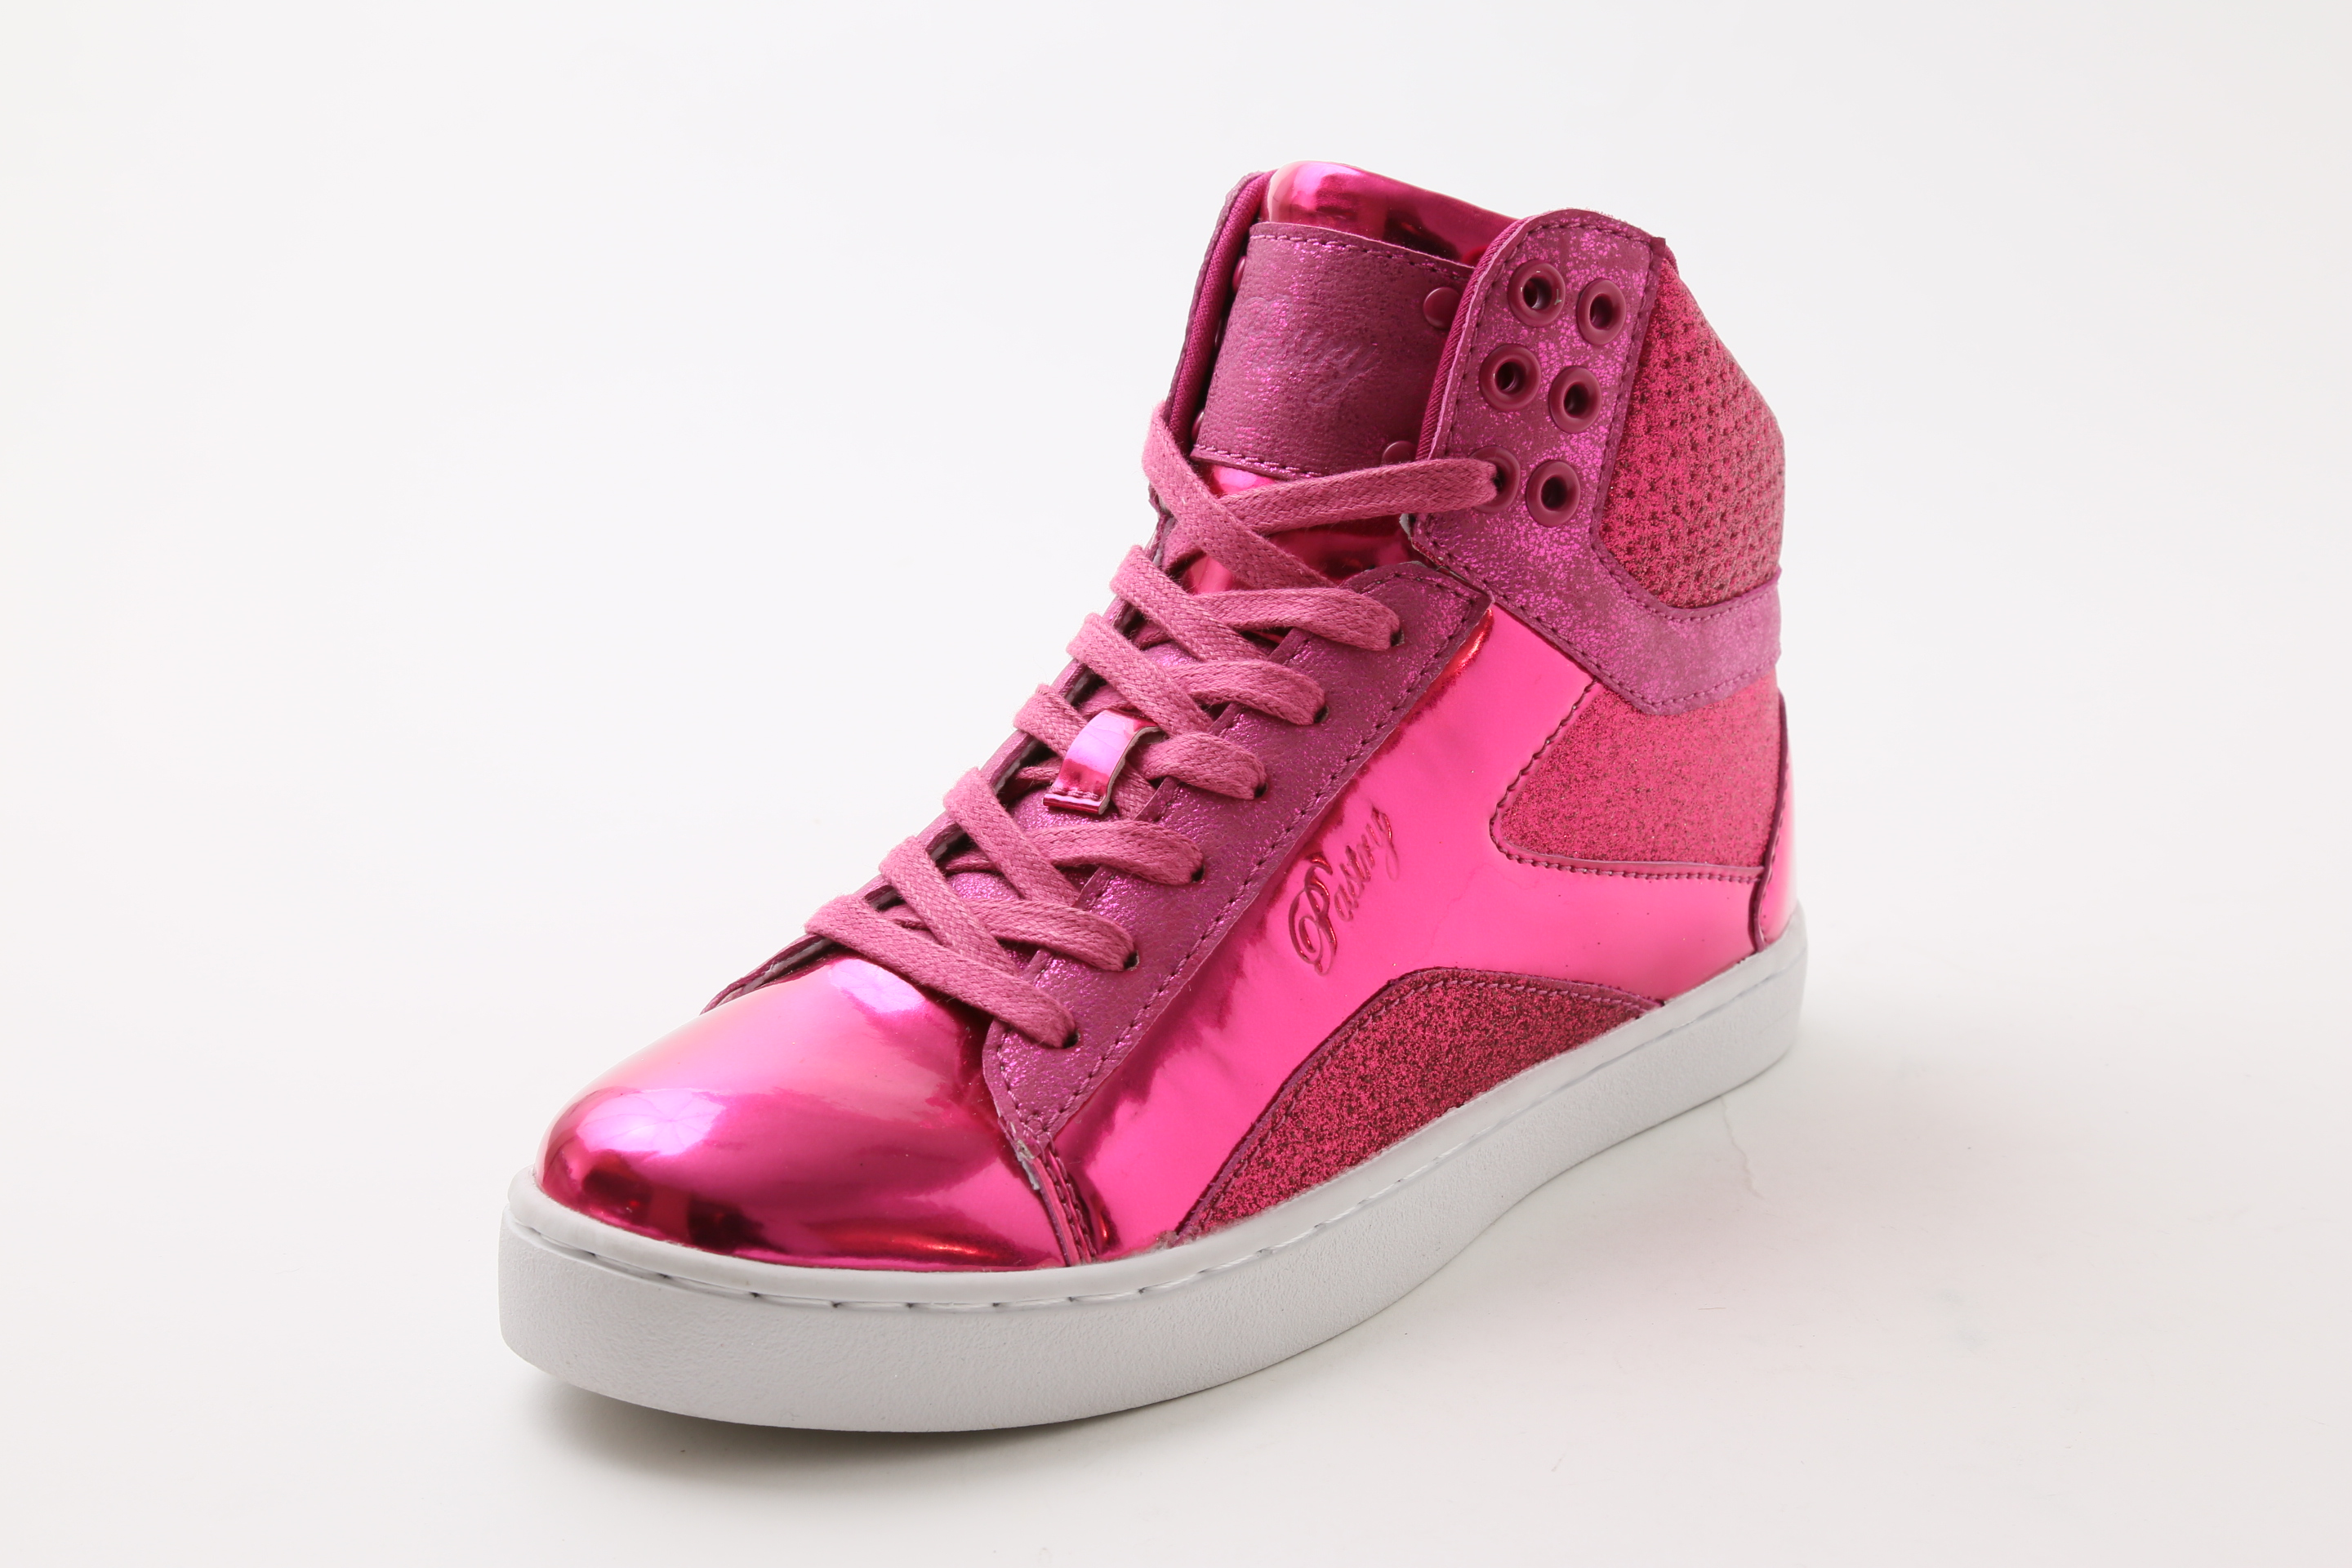 Pastry Shoes 2016 >> Pastry Pop Tart Glitter Sneakers | Dancers Dressing Room